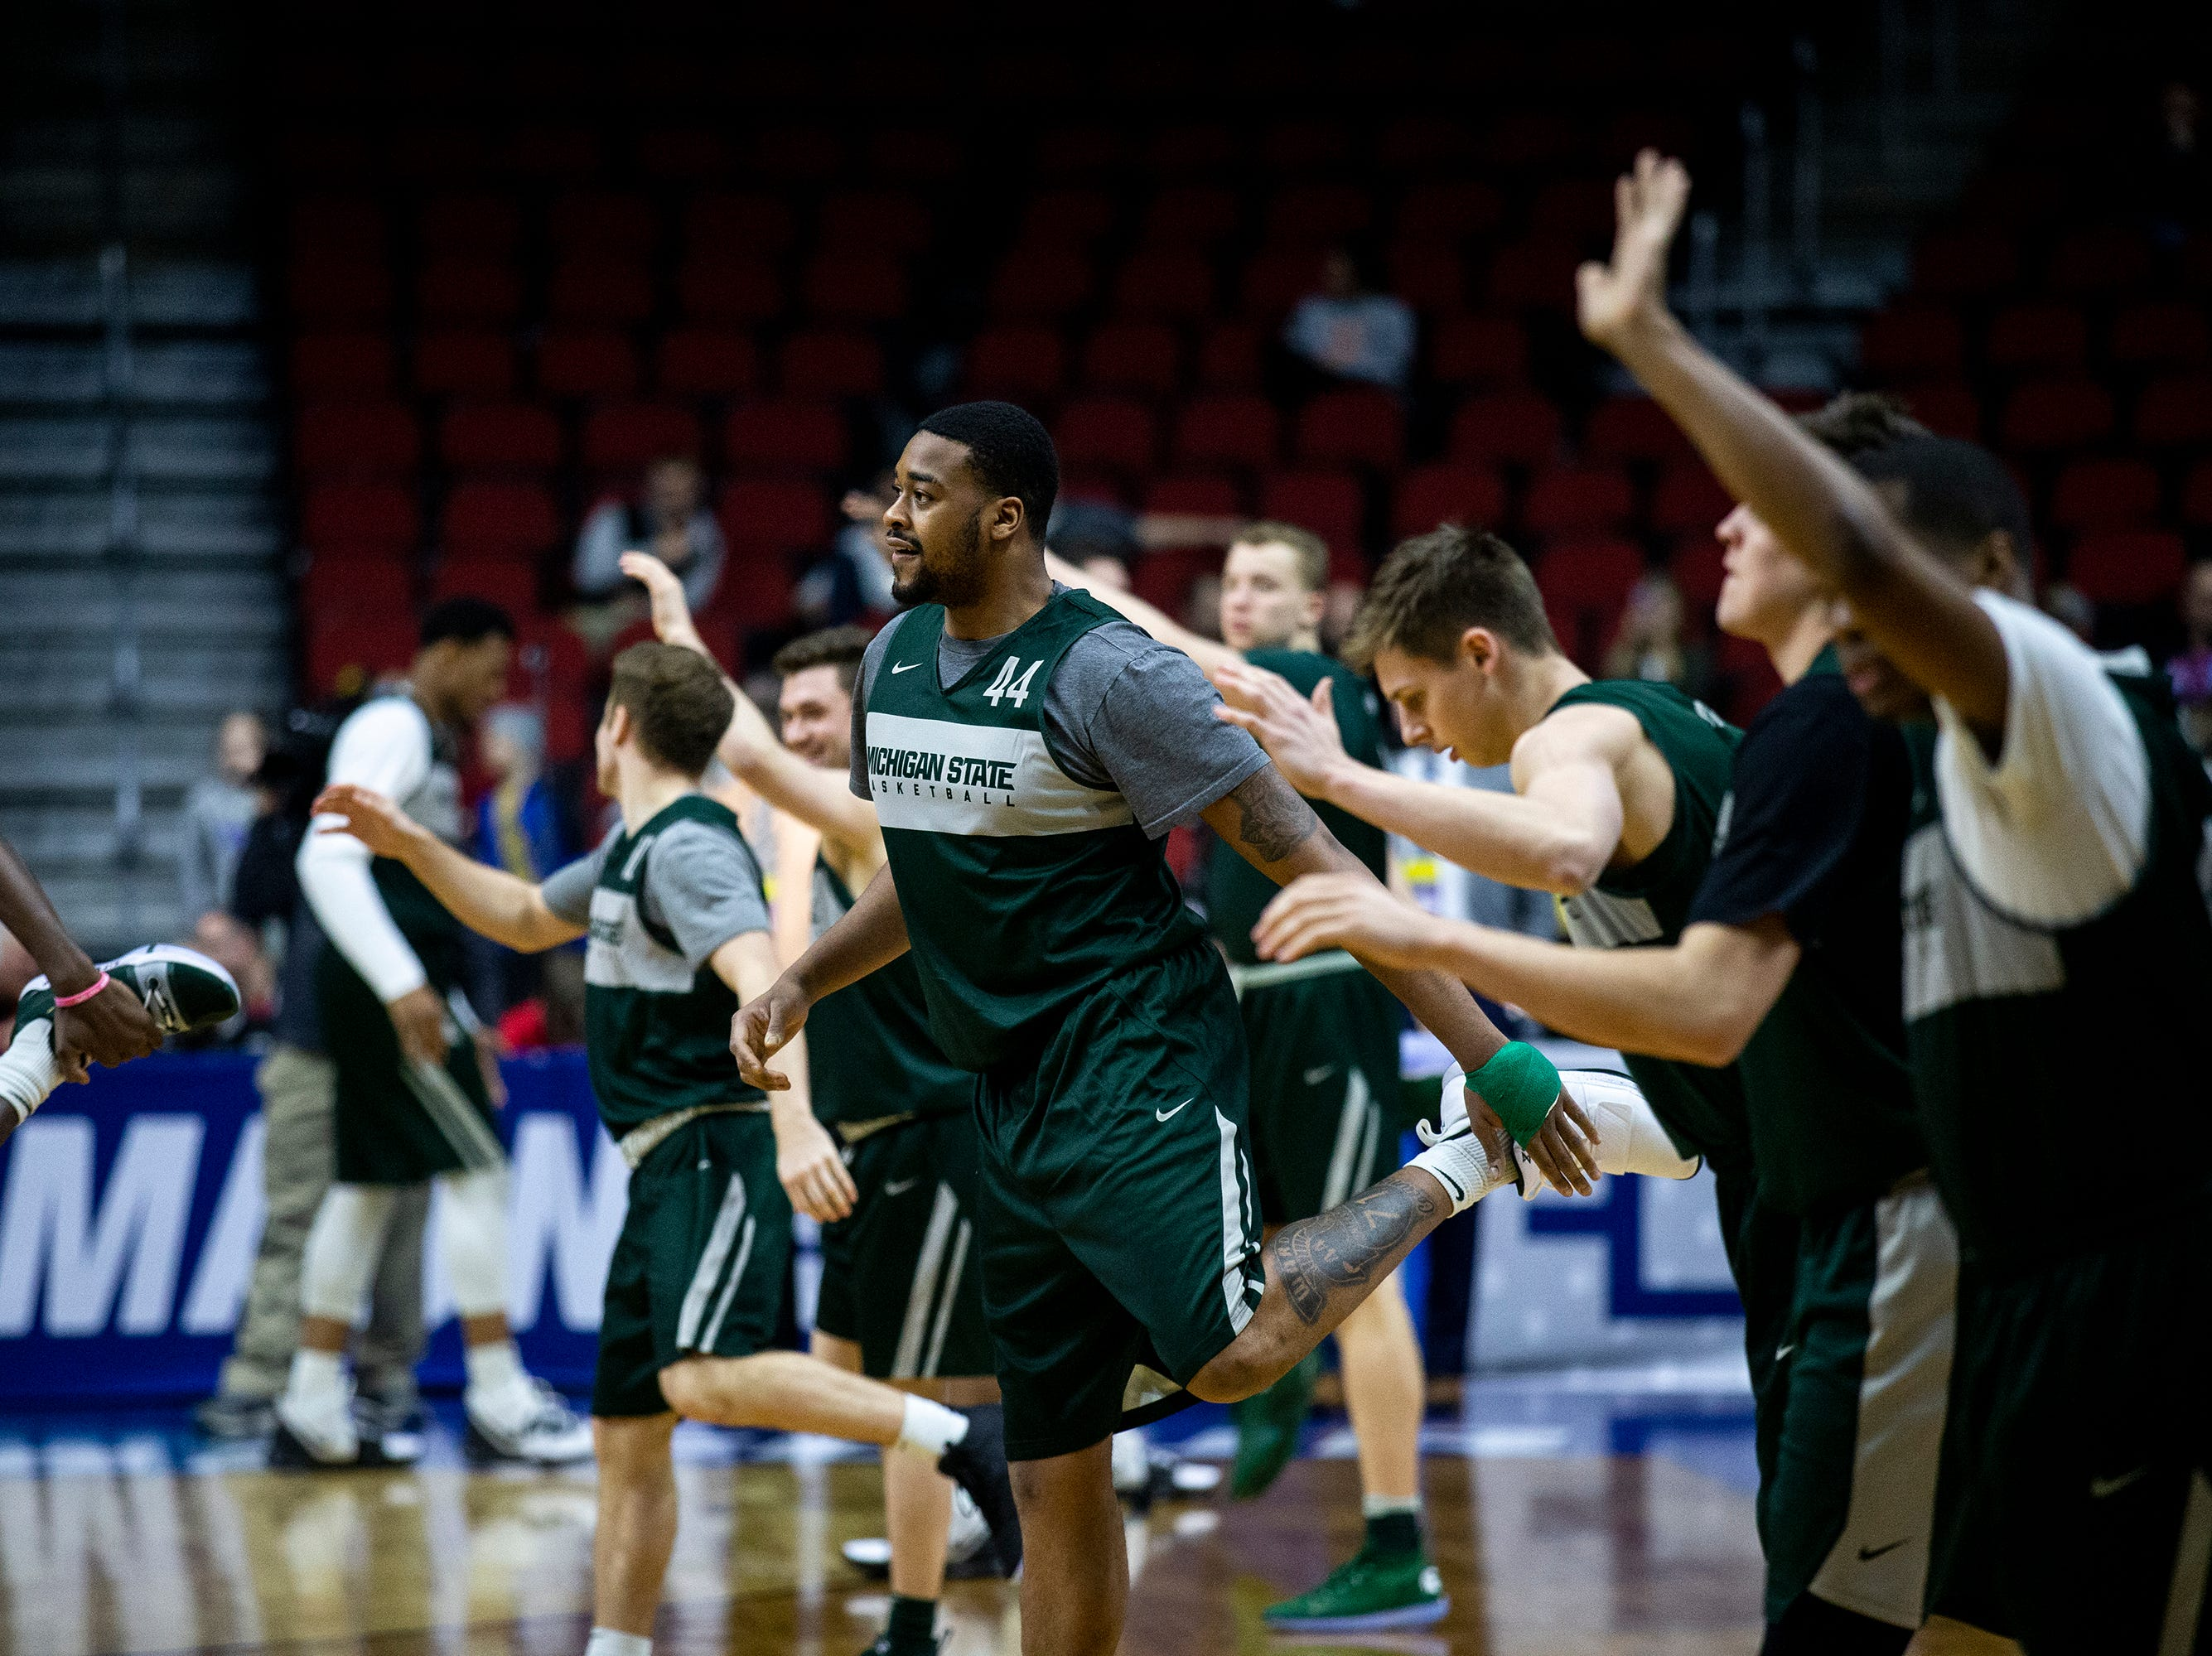 Michigan State's Nick Ward stretches during Michigan State's open practice before the first round of the NCAA Men's Basketball Tournament on Wednesday, March 20, 2019, at Wells Fargo Arena in Des Moines, Iowa.